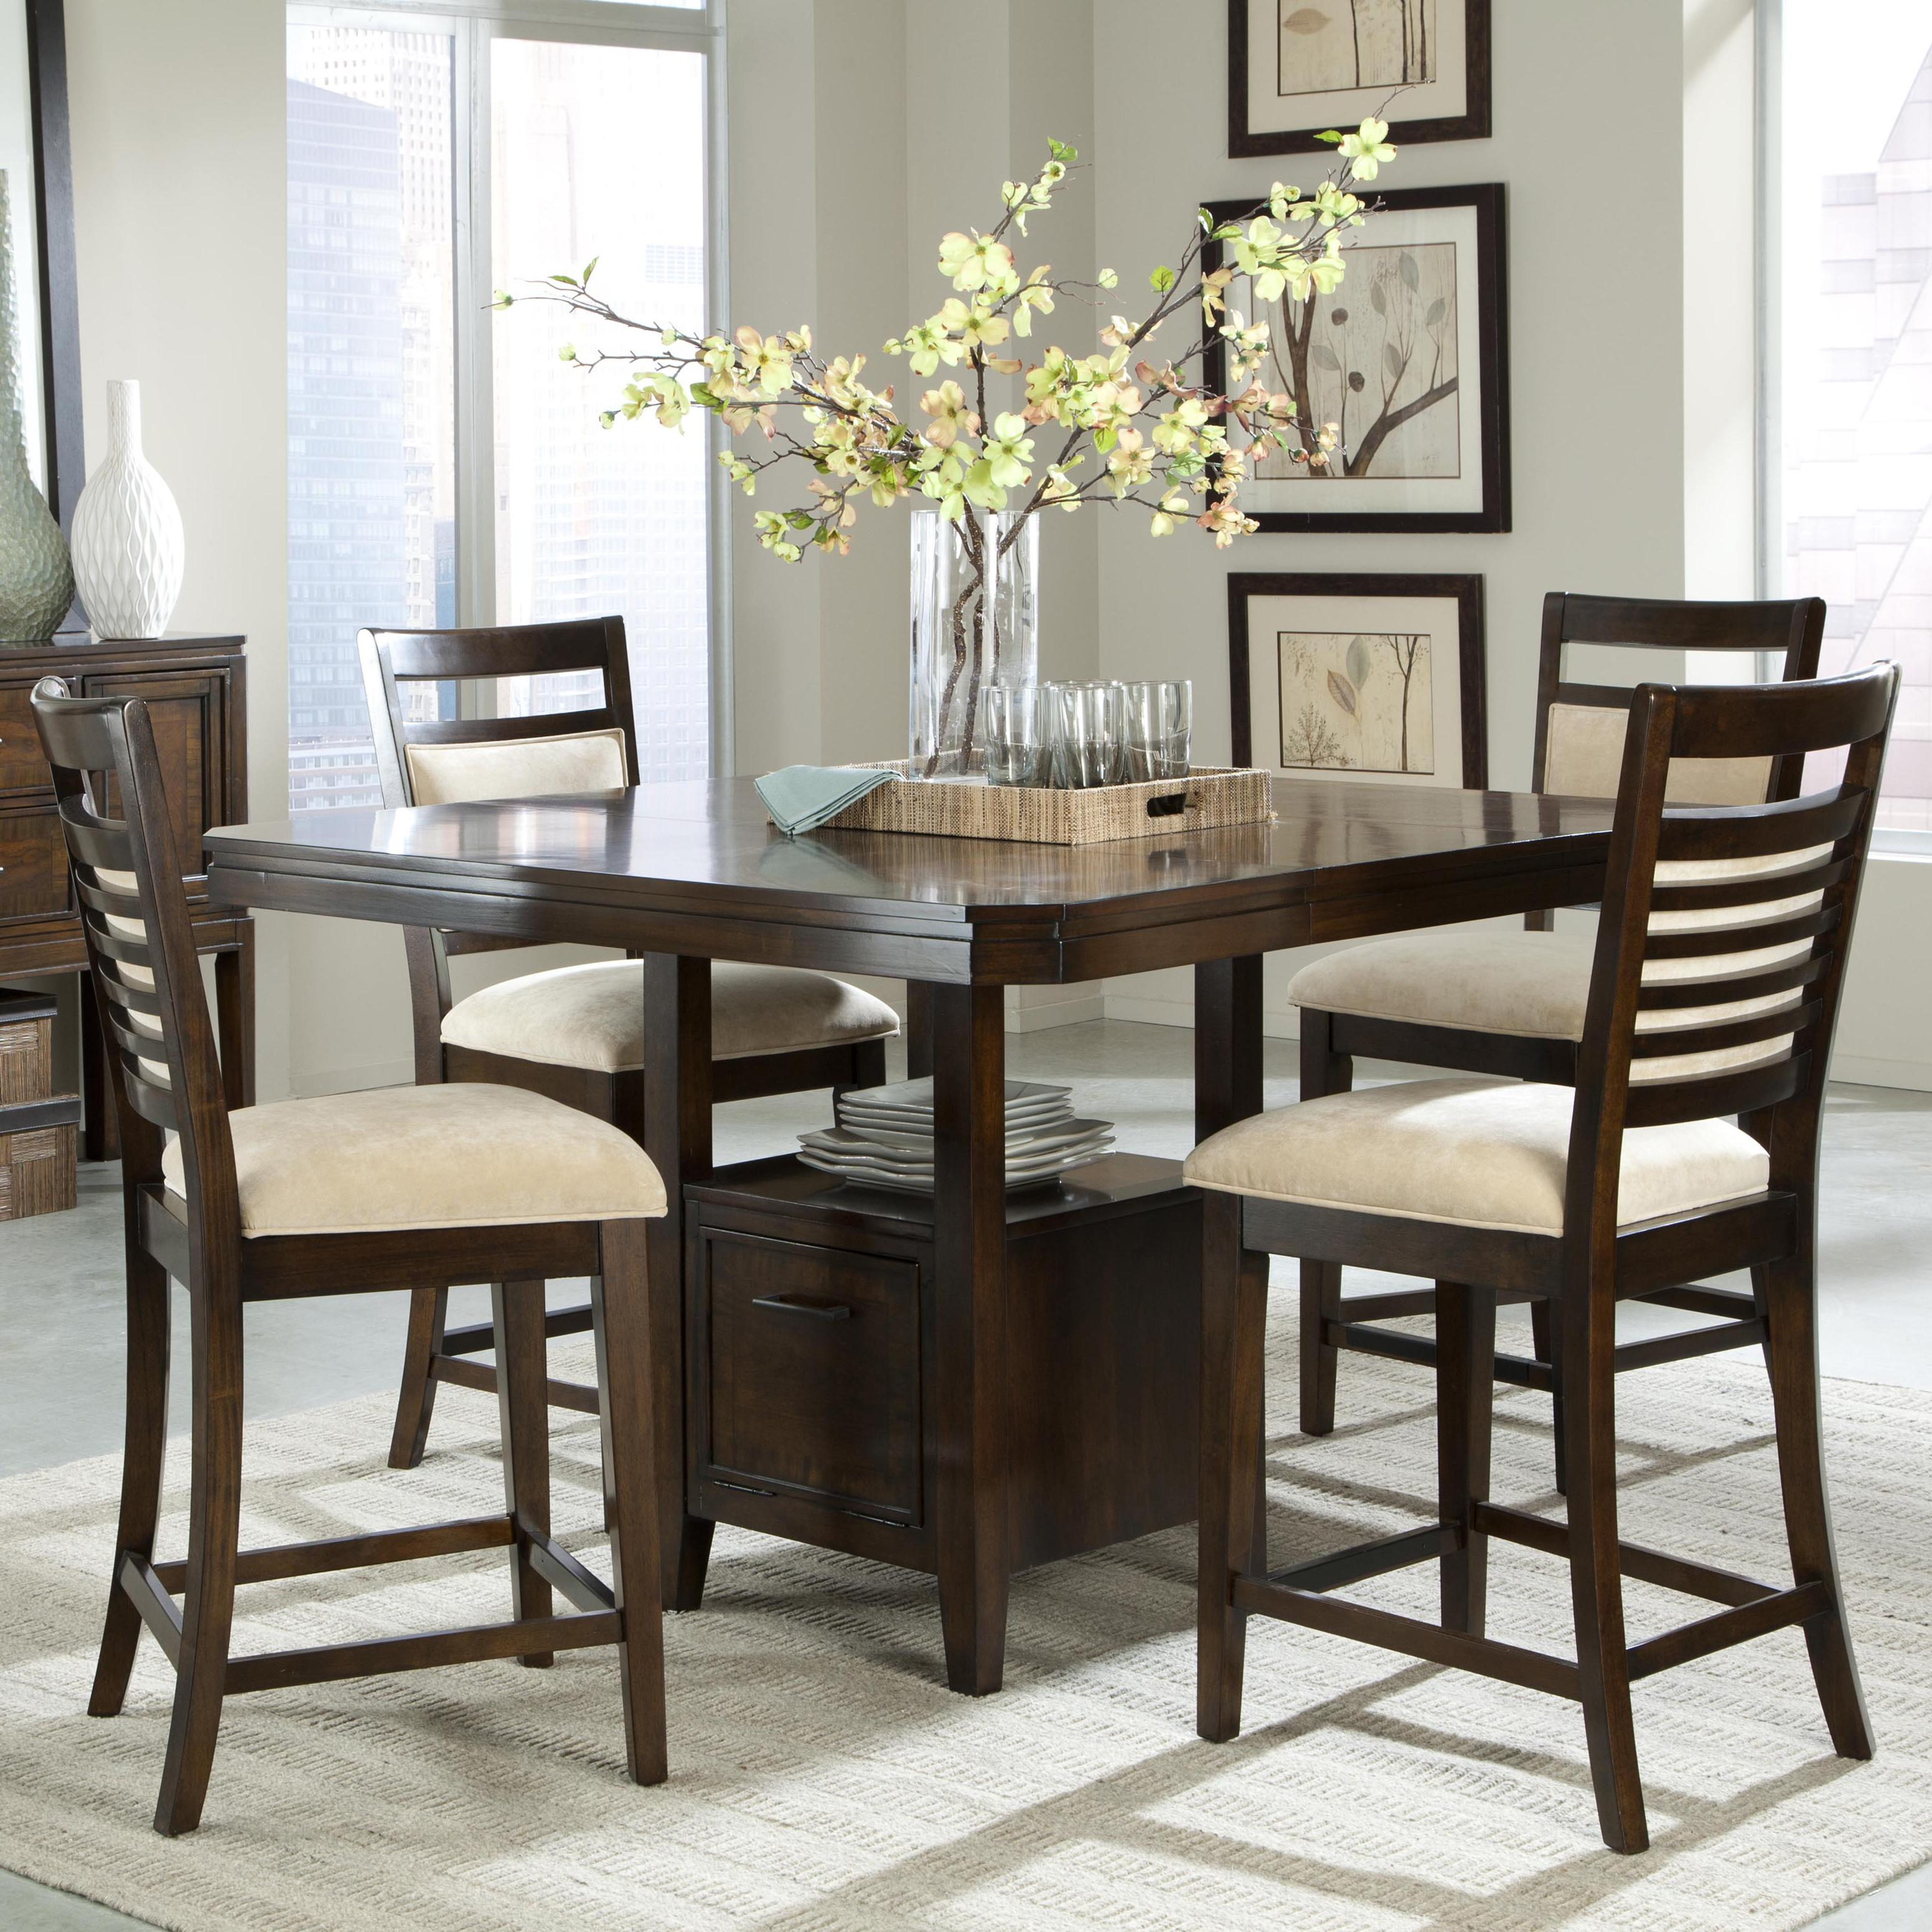 5 piece counter height table set and upholstered counter height chairs with ladder back wood detailing